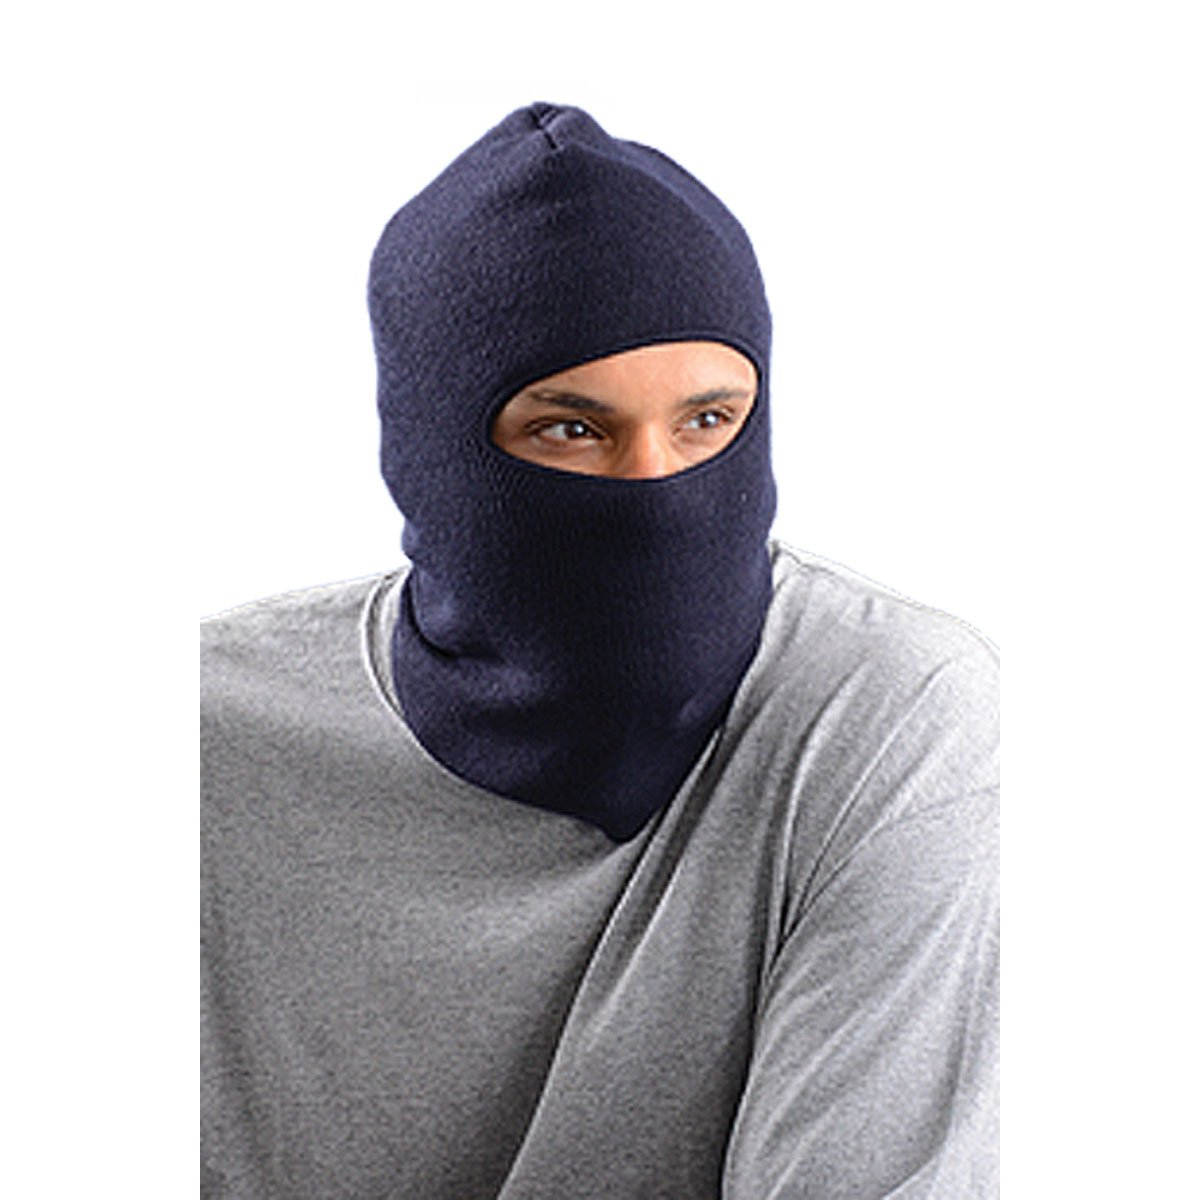 Stay Warm - Lined, Insulated Face Mask - Navy - Made in the USA - 12-PACK